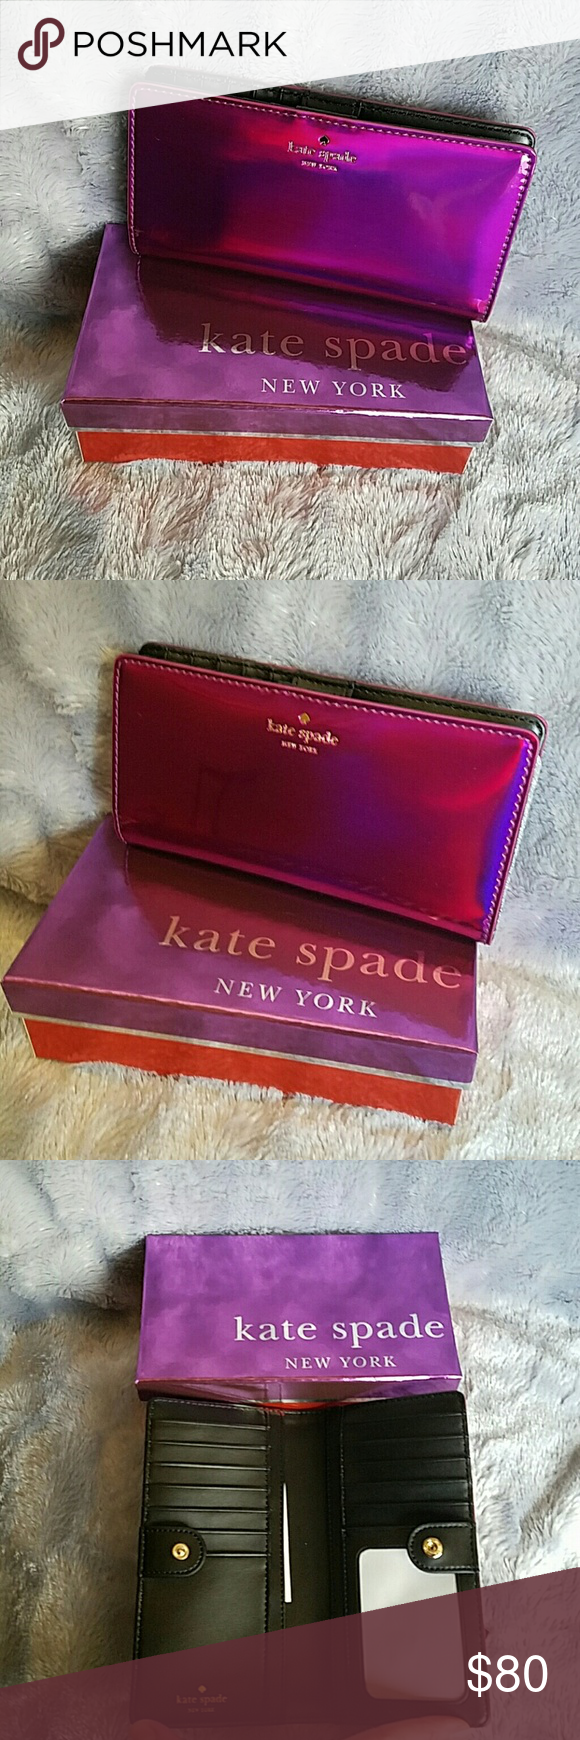 "Kate Spade Iridescent Wallet NWT!! Kate Spade Iridescent Wallet Snap closure  14 karat gold plated hardware  12 credit card slots, one id slot and two billfold 3.5""h x 6.6""w x 0.5""d Kate Spade  Bags Wallets"